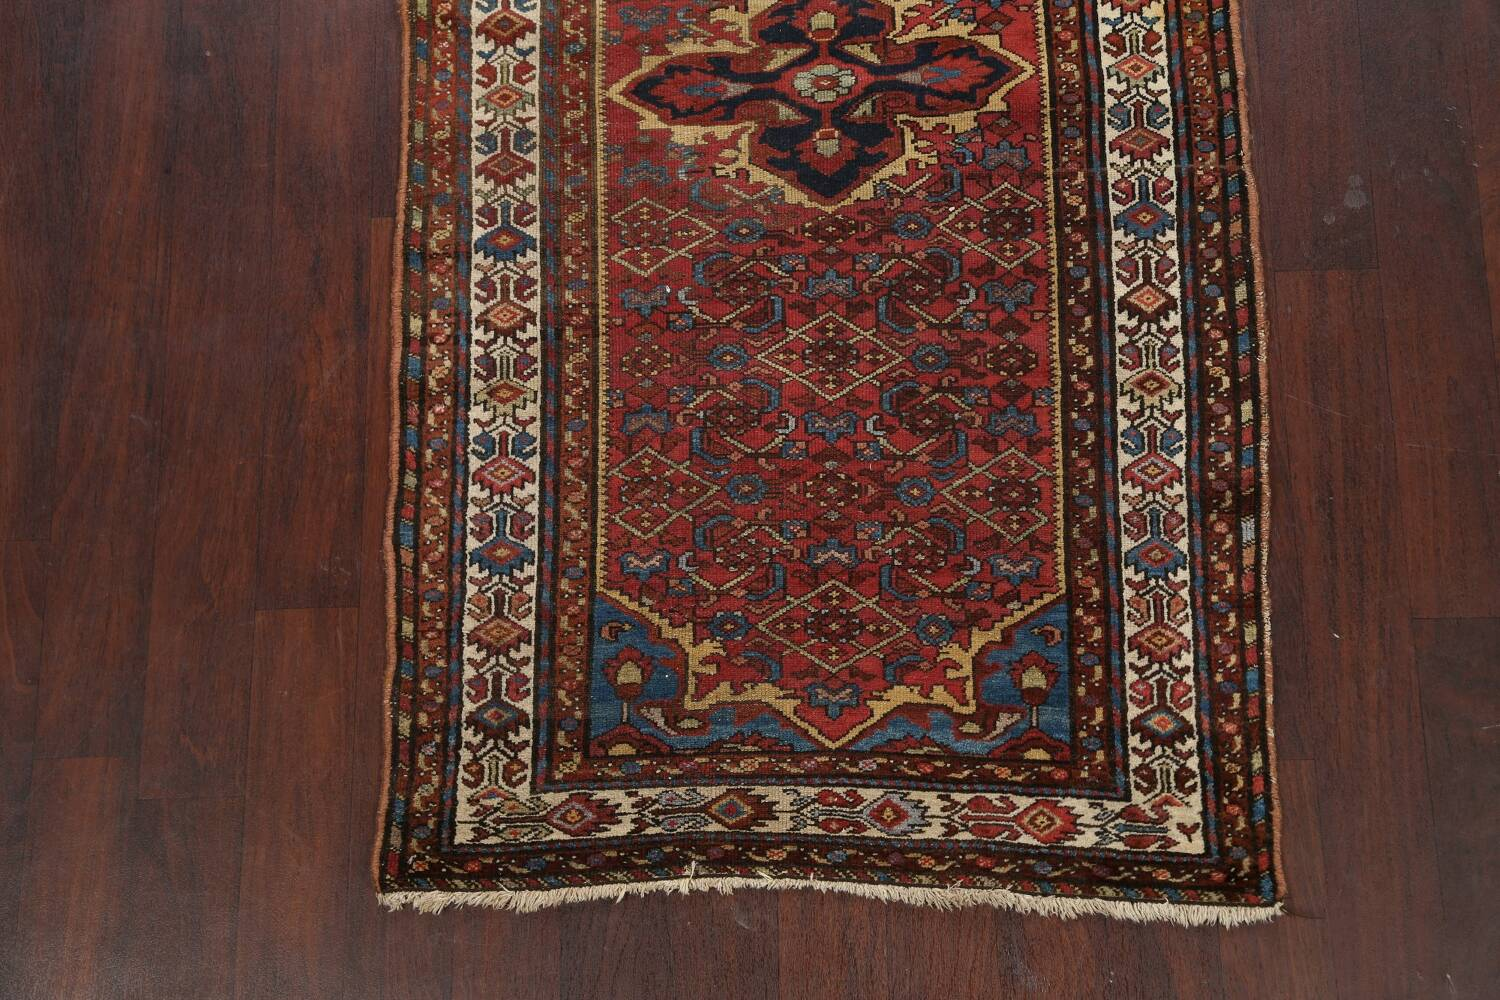 Pre-1900 Antique Vegetable Dye Malayer Persian Area Rug 4x7 image 8